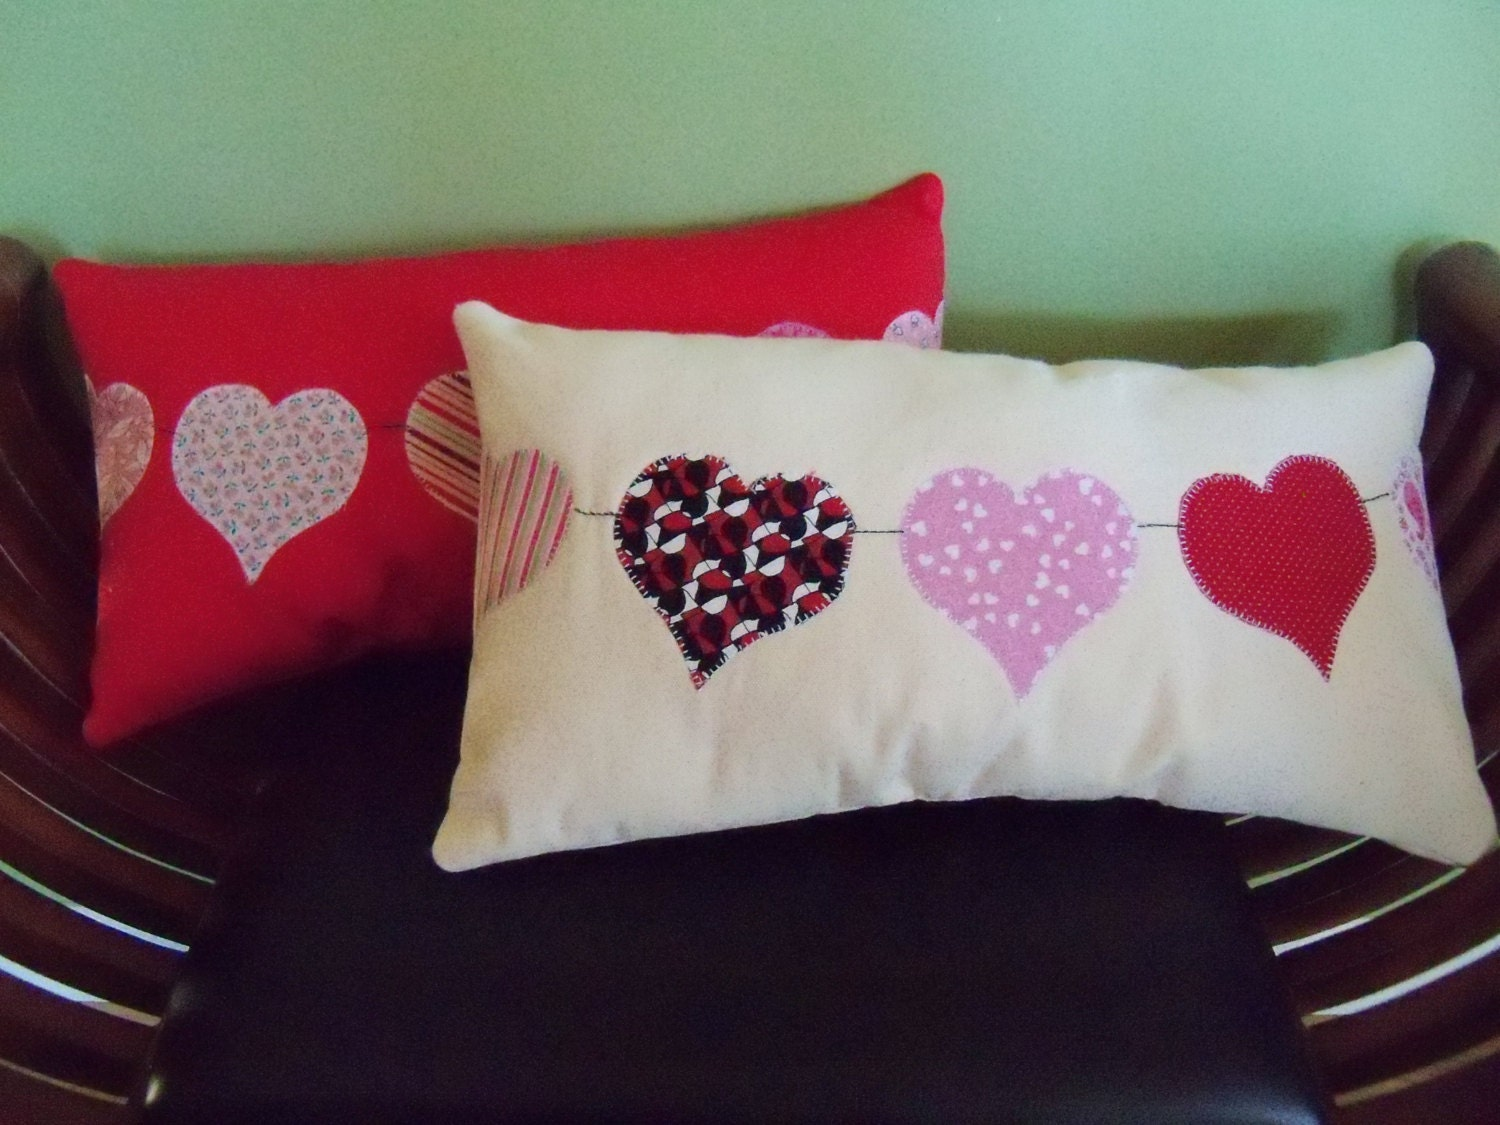 Decorative Valentine Pillows : Valentine Heart Decorative Pillows Handmade Set Heart Pillows